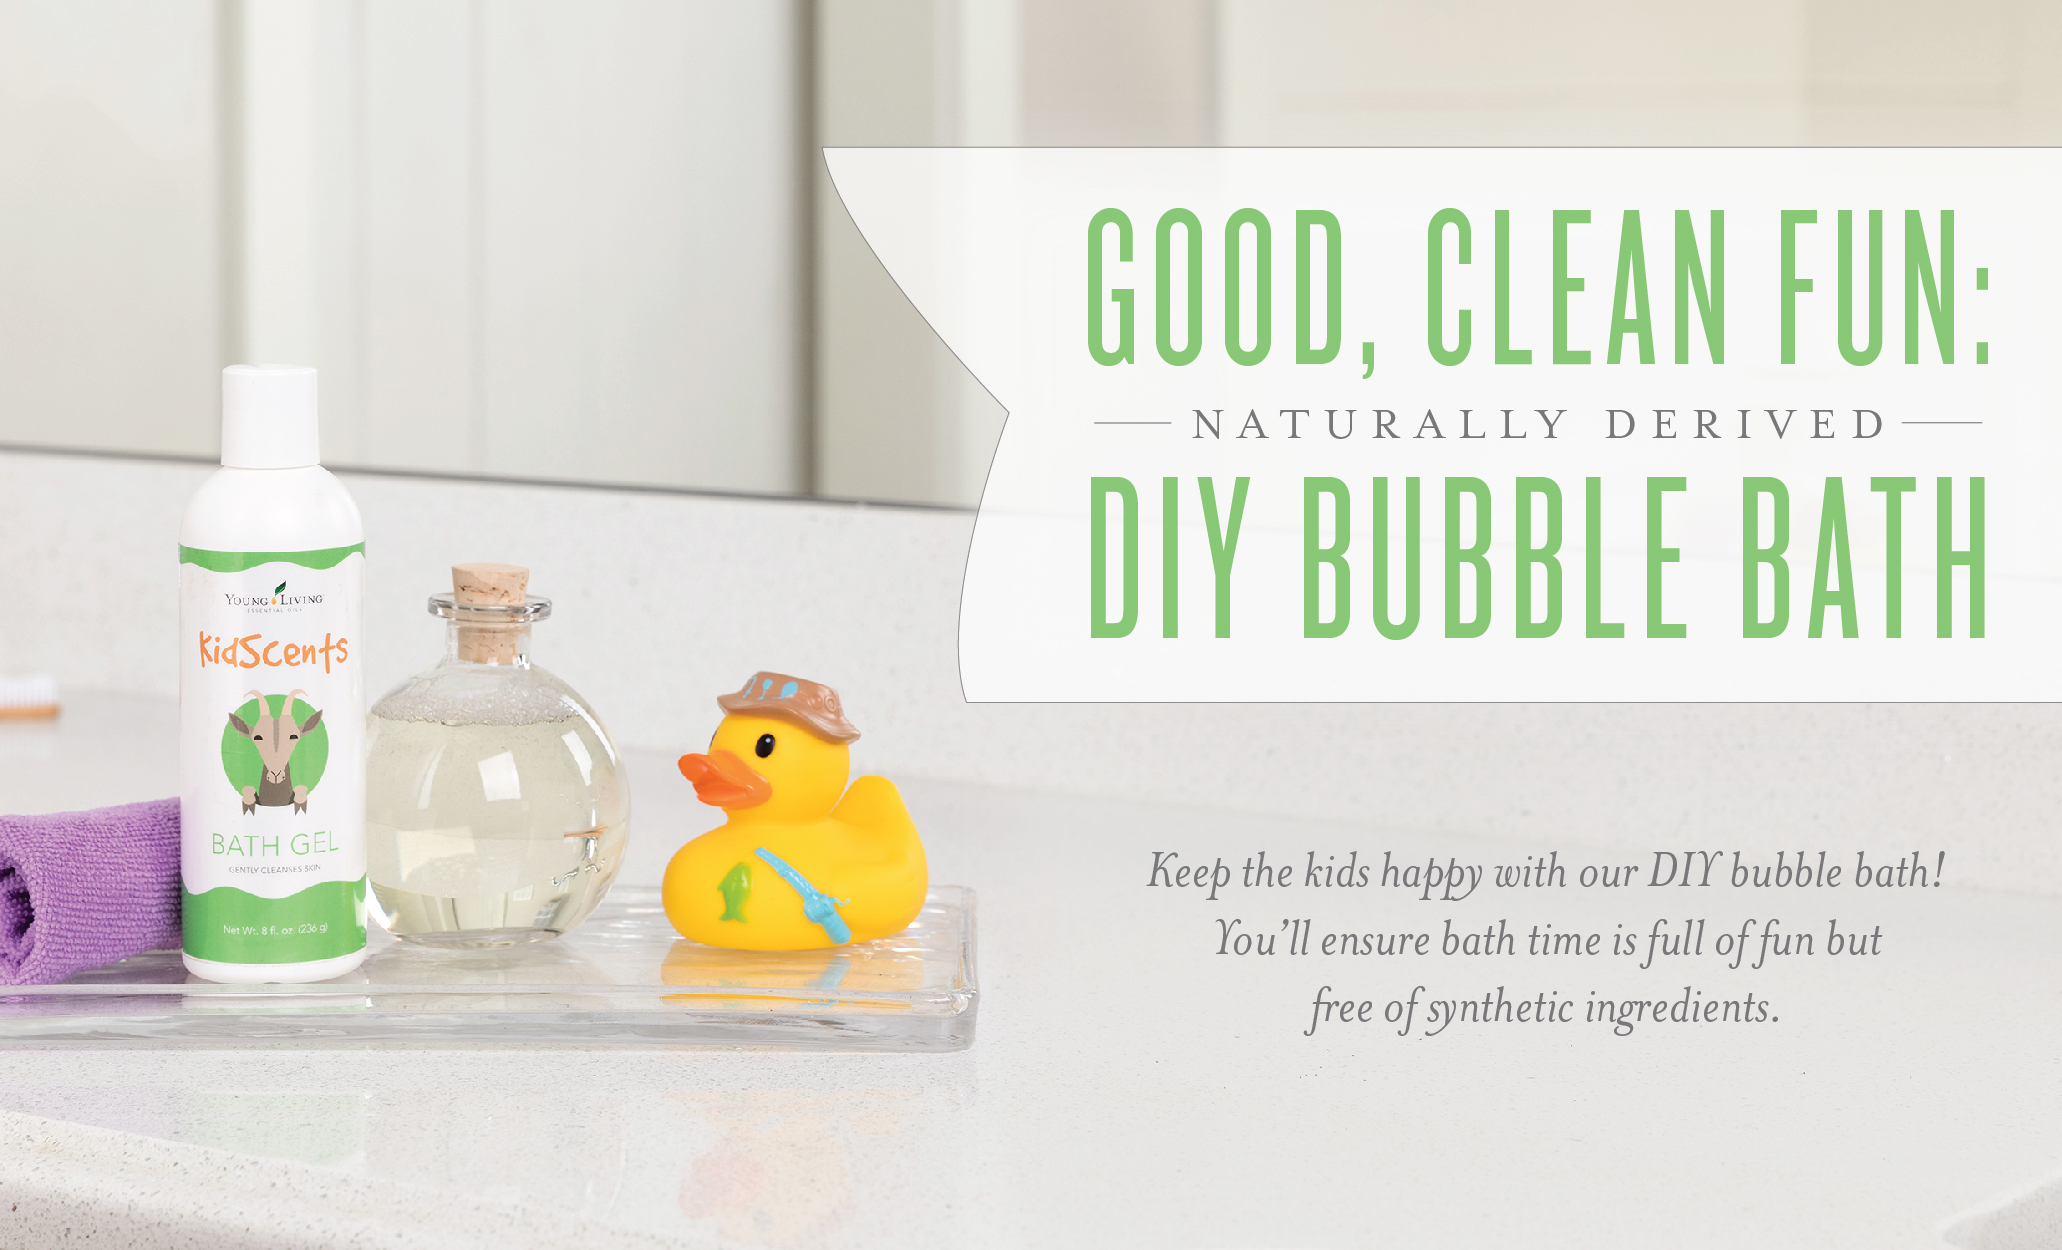 See more at  https://www.youngliving.com/blog/good-clean-fun-naturally-derived-diy-bubble-bath-video/